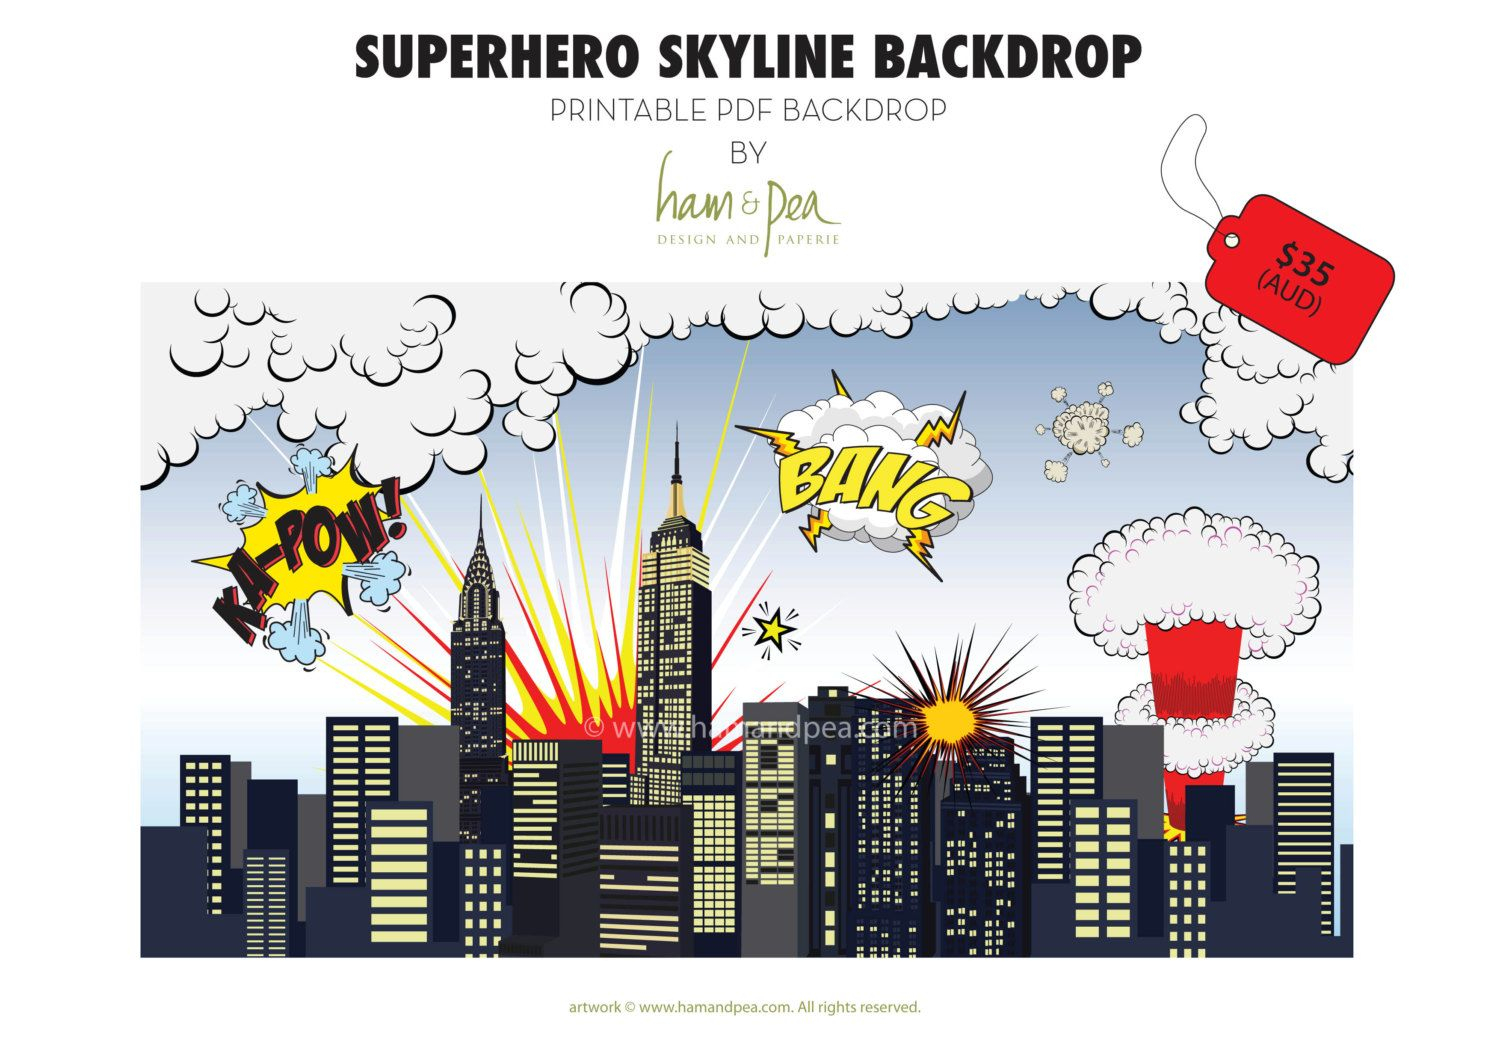 Superhero Skyline Explosion Backdrop (Pdf File) In 2019 | Caden's - Free Printable Superhero Skyline